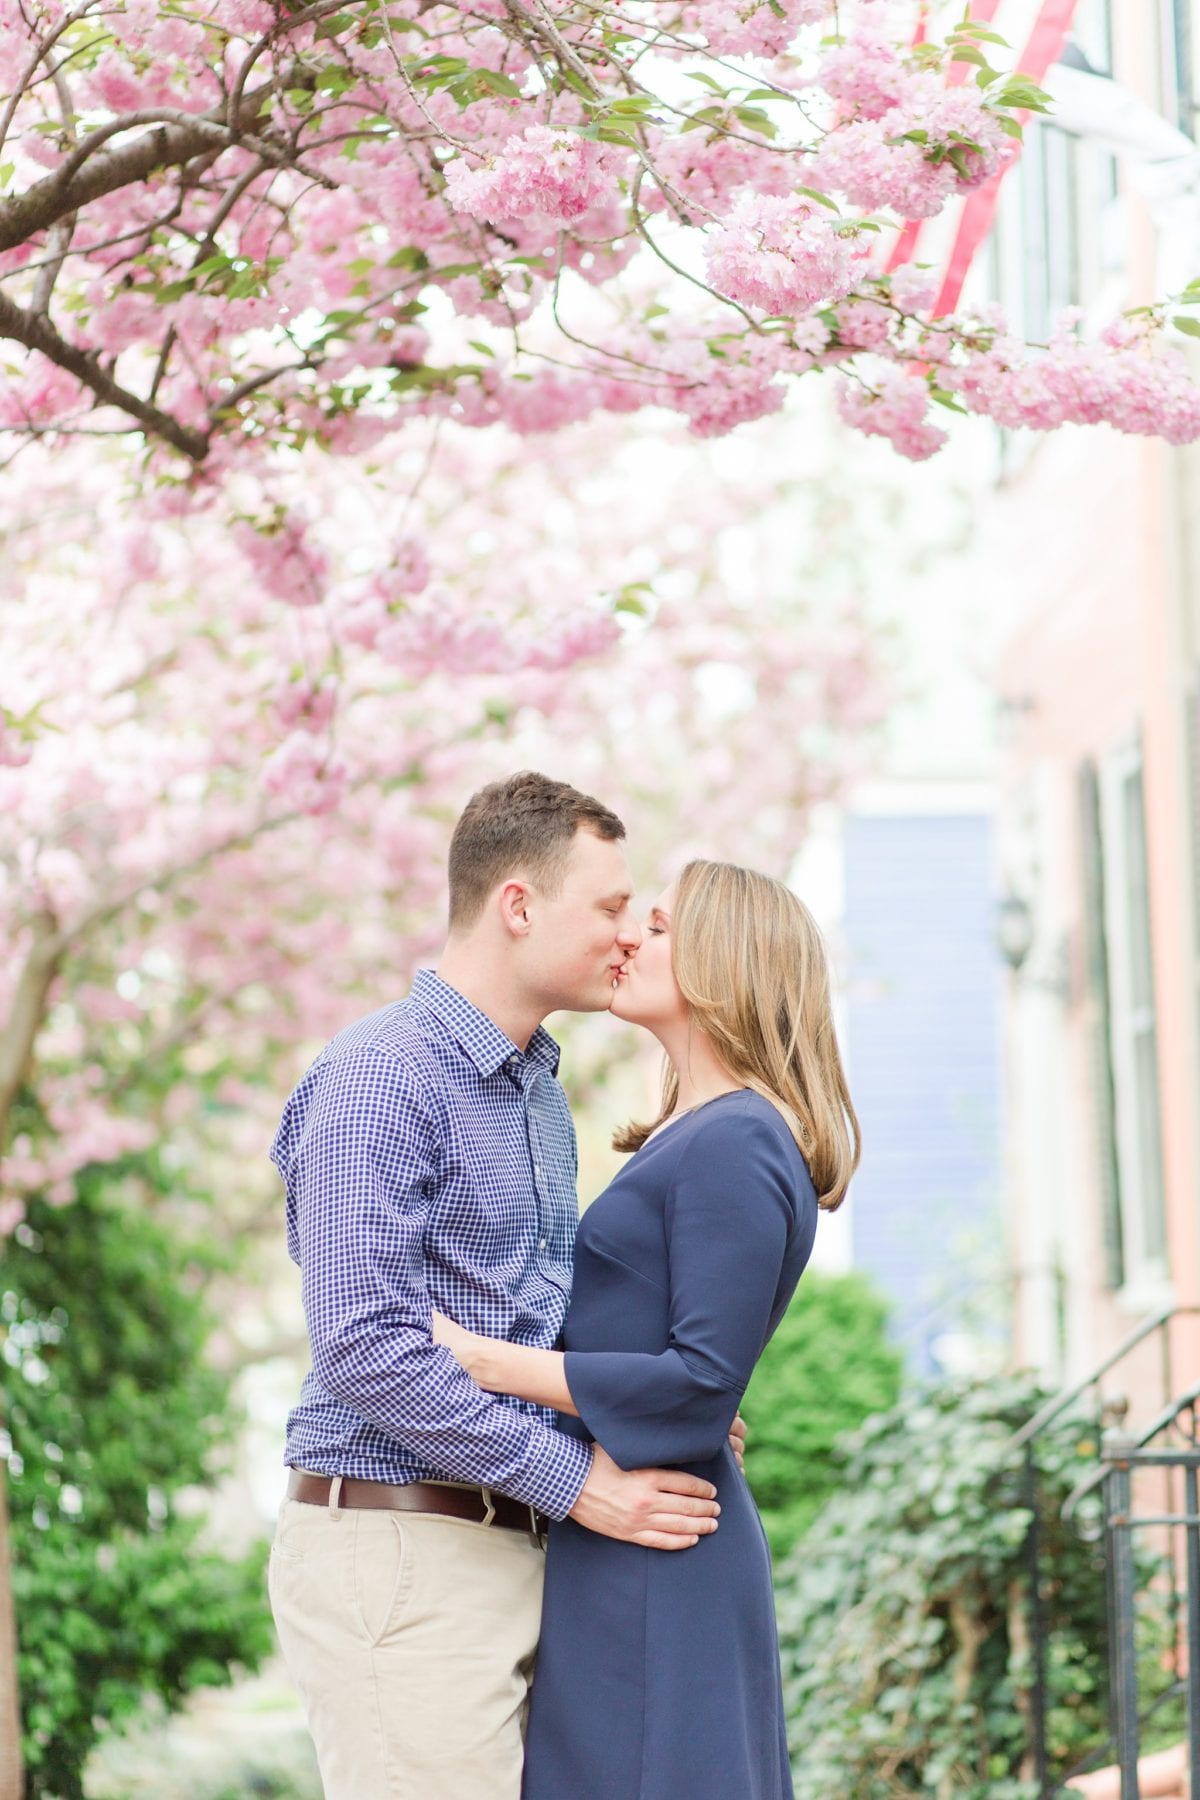 Springtime Old Town Alexandria Engagement Session Matt & Maxie Megan Kelsey Photography-66.jpg